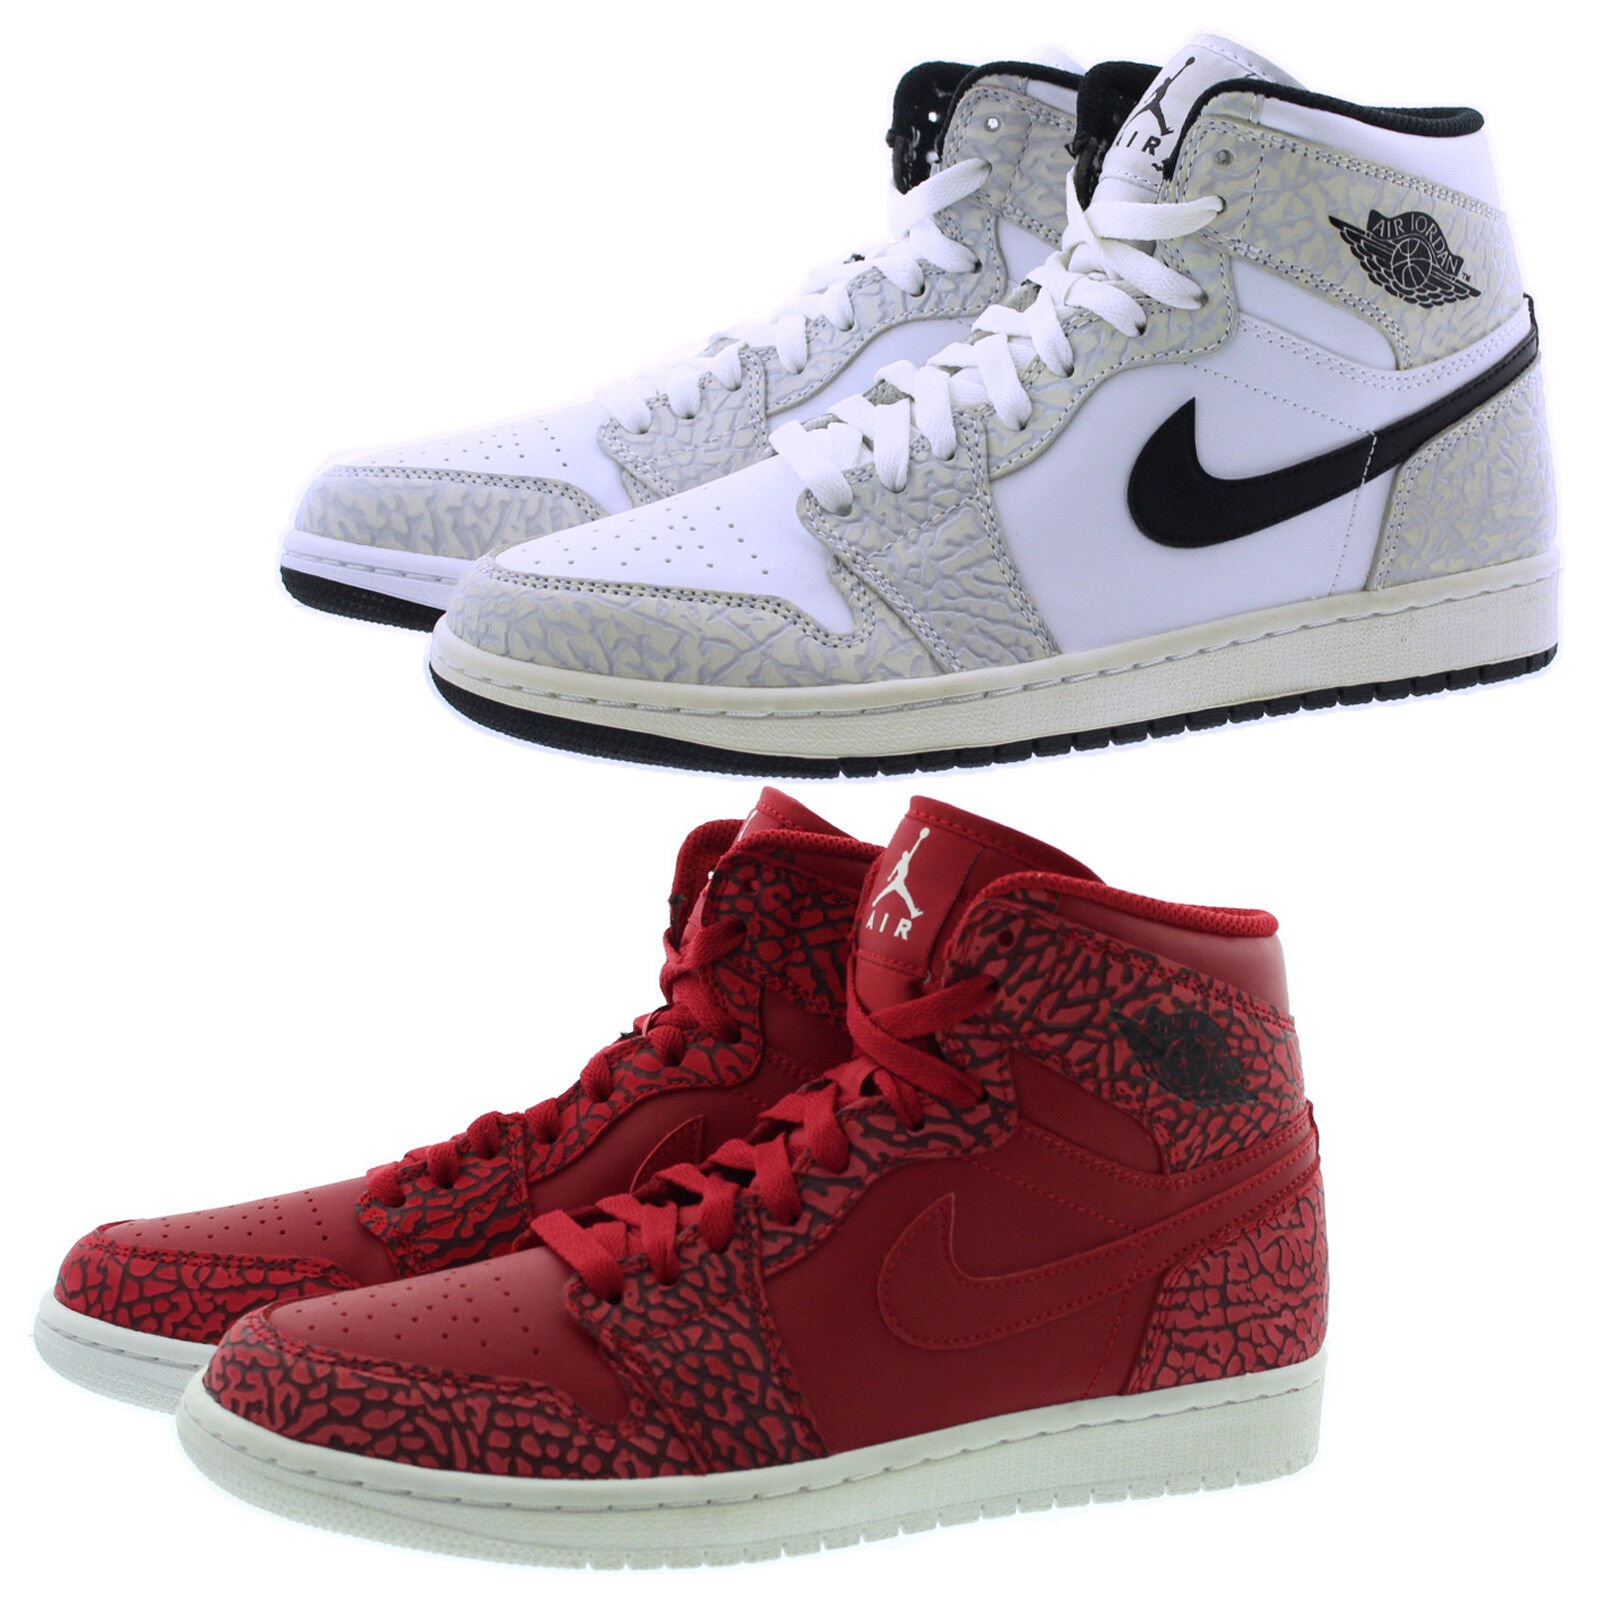 buy online d176b e74b8 Nike 839115 Mens Air Jordan 1 Retro High Top Basketball Athletic Shoes  Sneakers